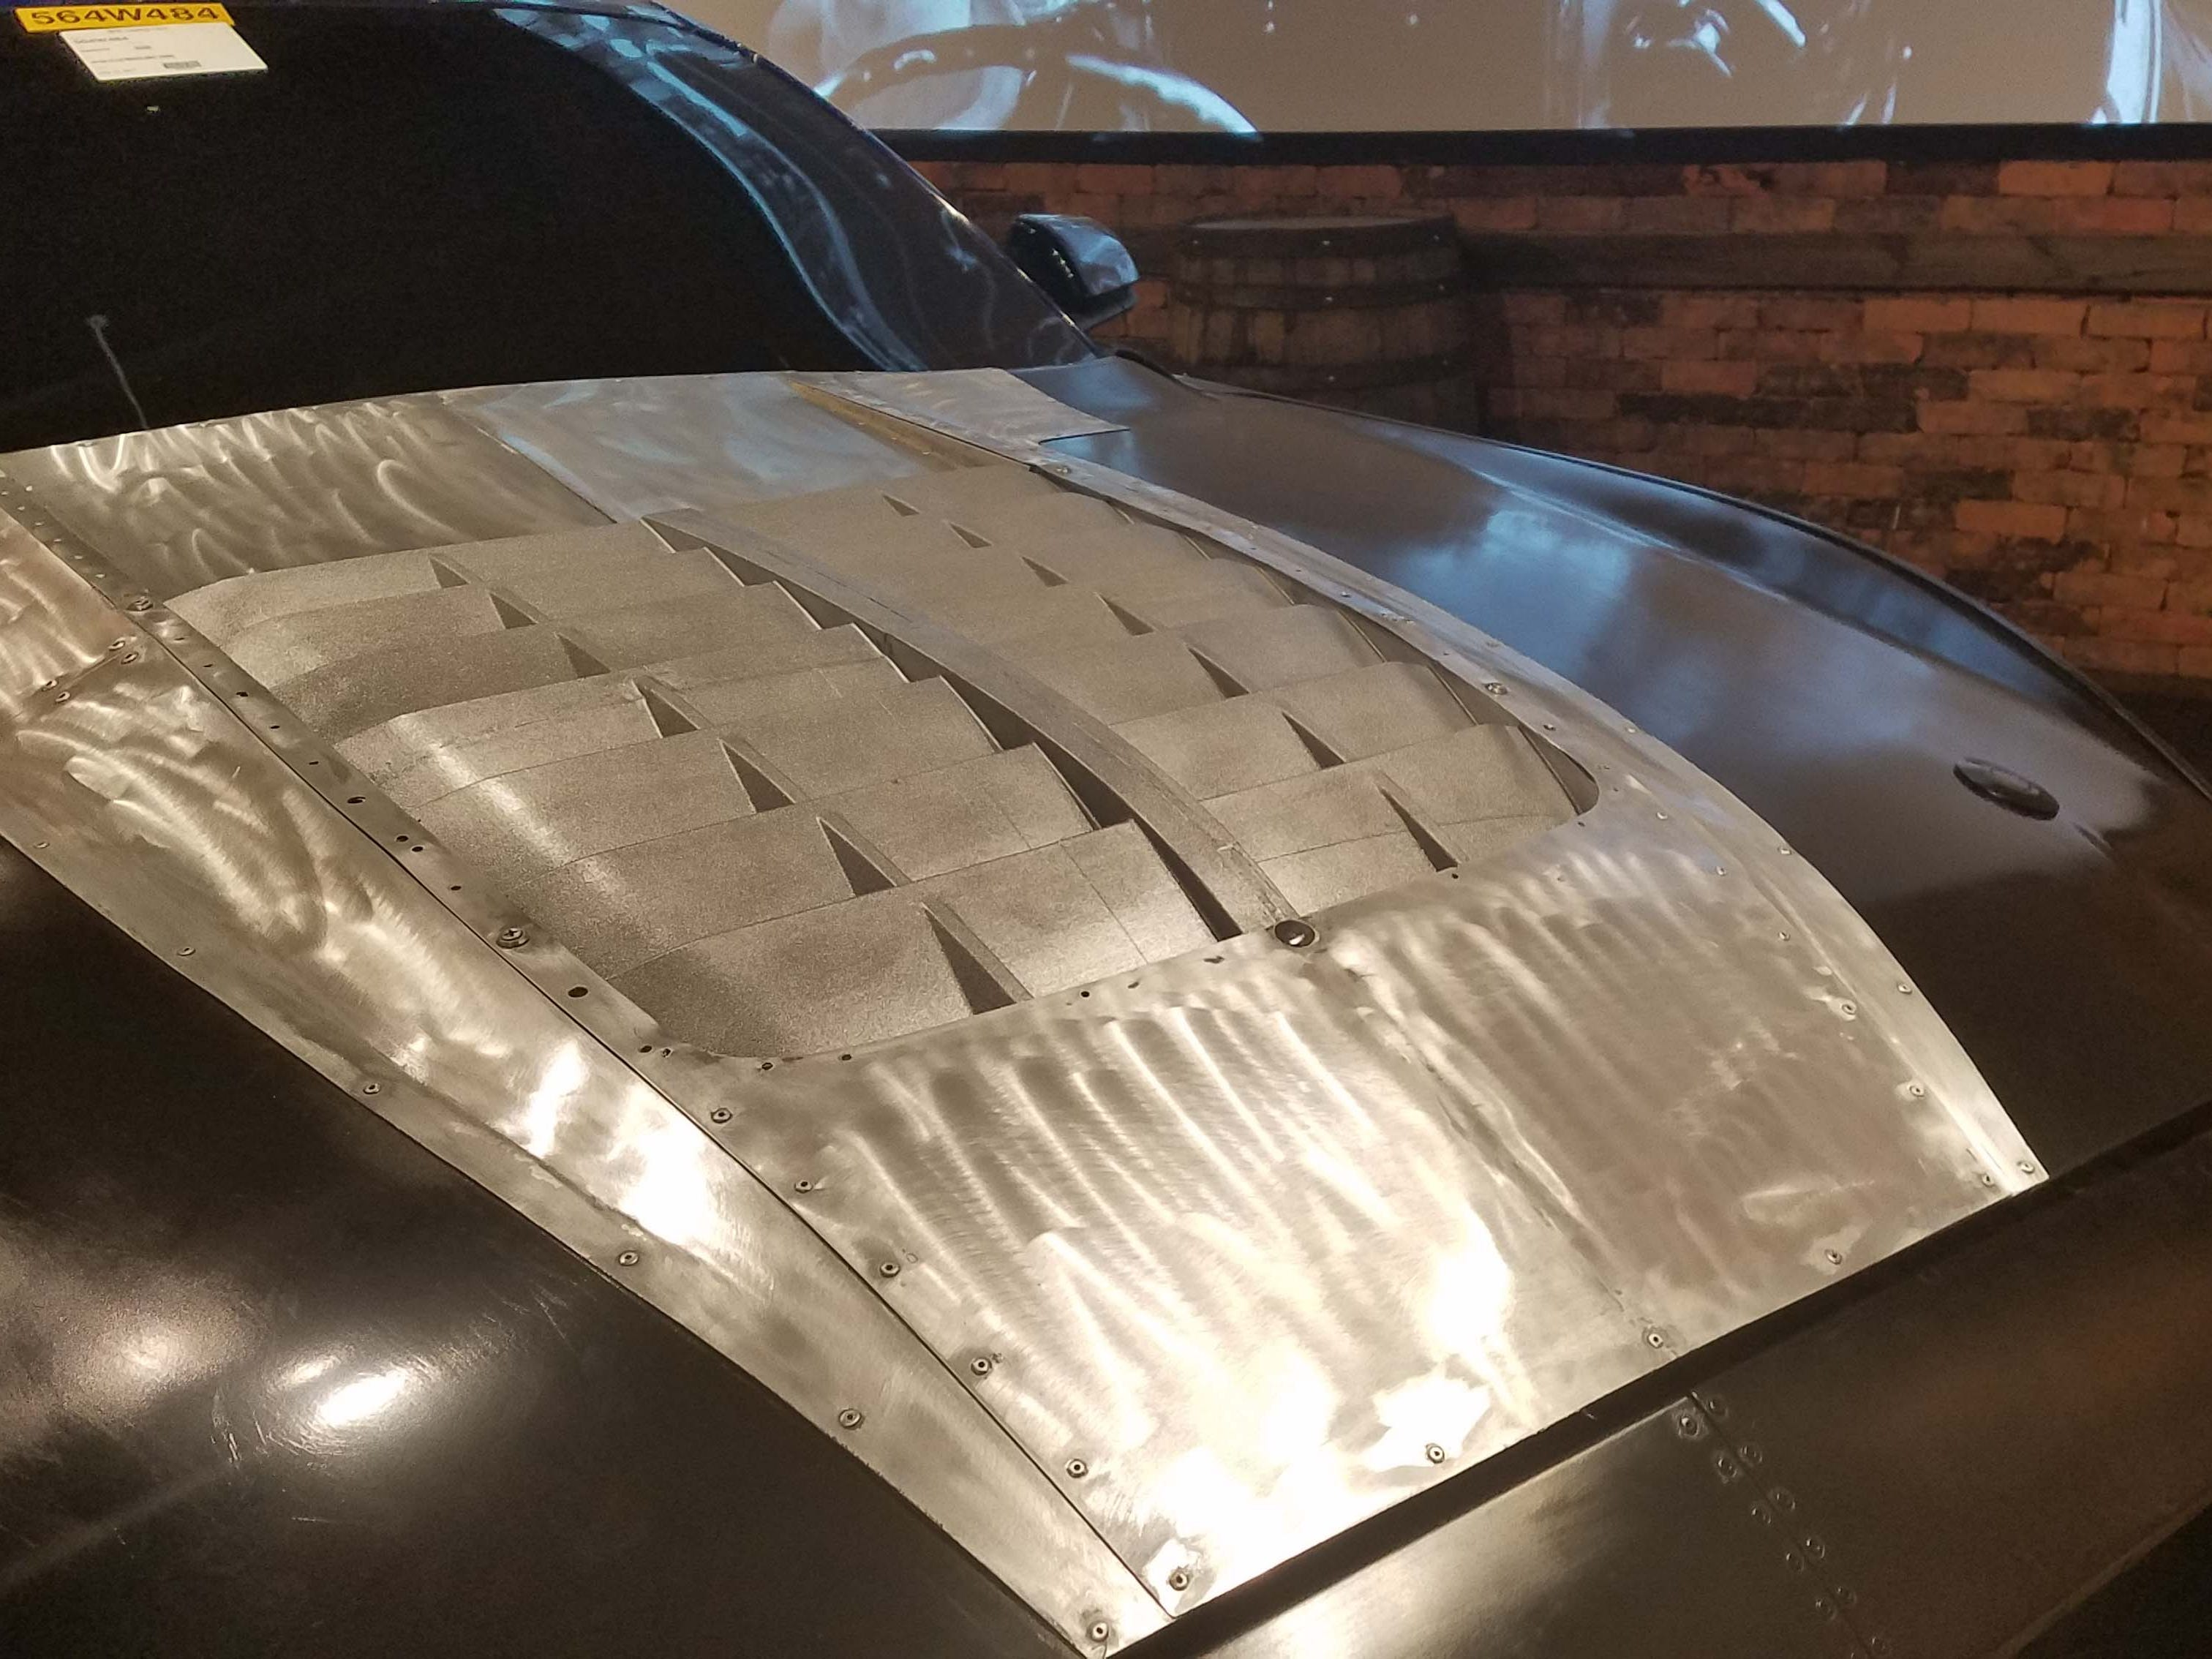 """The new Ford Mustang GT500 depended on extensive 3D printing to speed up the development process. The front end of the aero """"Buck"""" model was fitted with 3D printed pieces like this hood vent in order to simulate airflow in wind tunnel testing."""